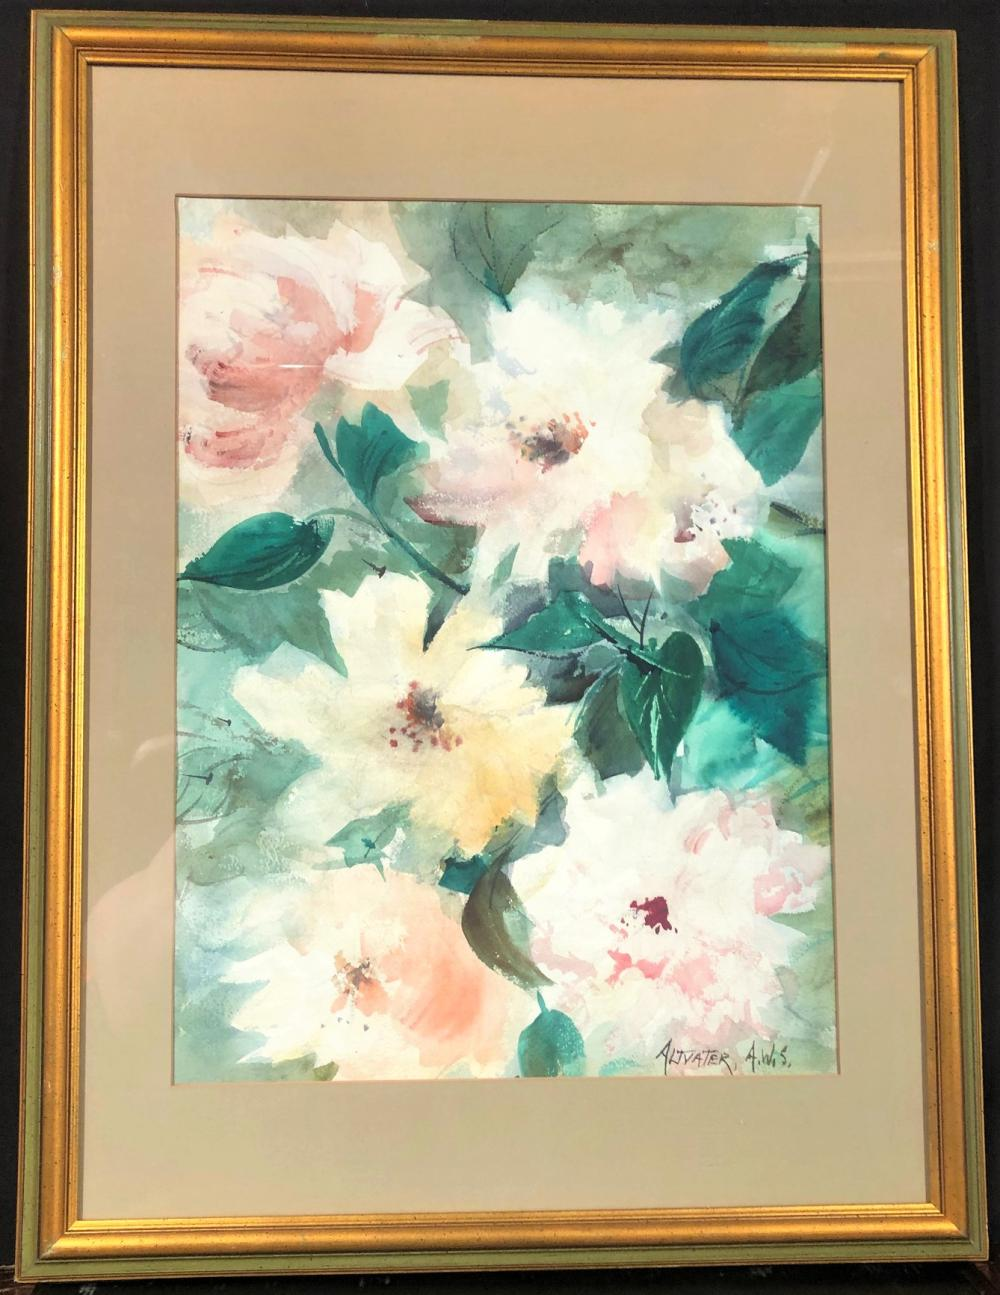 CATHERINE THARP ALTVATER (1907-1984) ORIGINAL WATERCOLOR TITLED SPRING FANTASY, MATTED, FRAMED AND MEASURING 33in x 24.5in x 1in